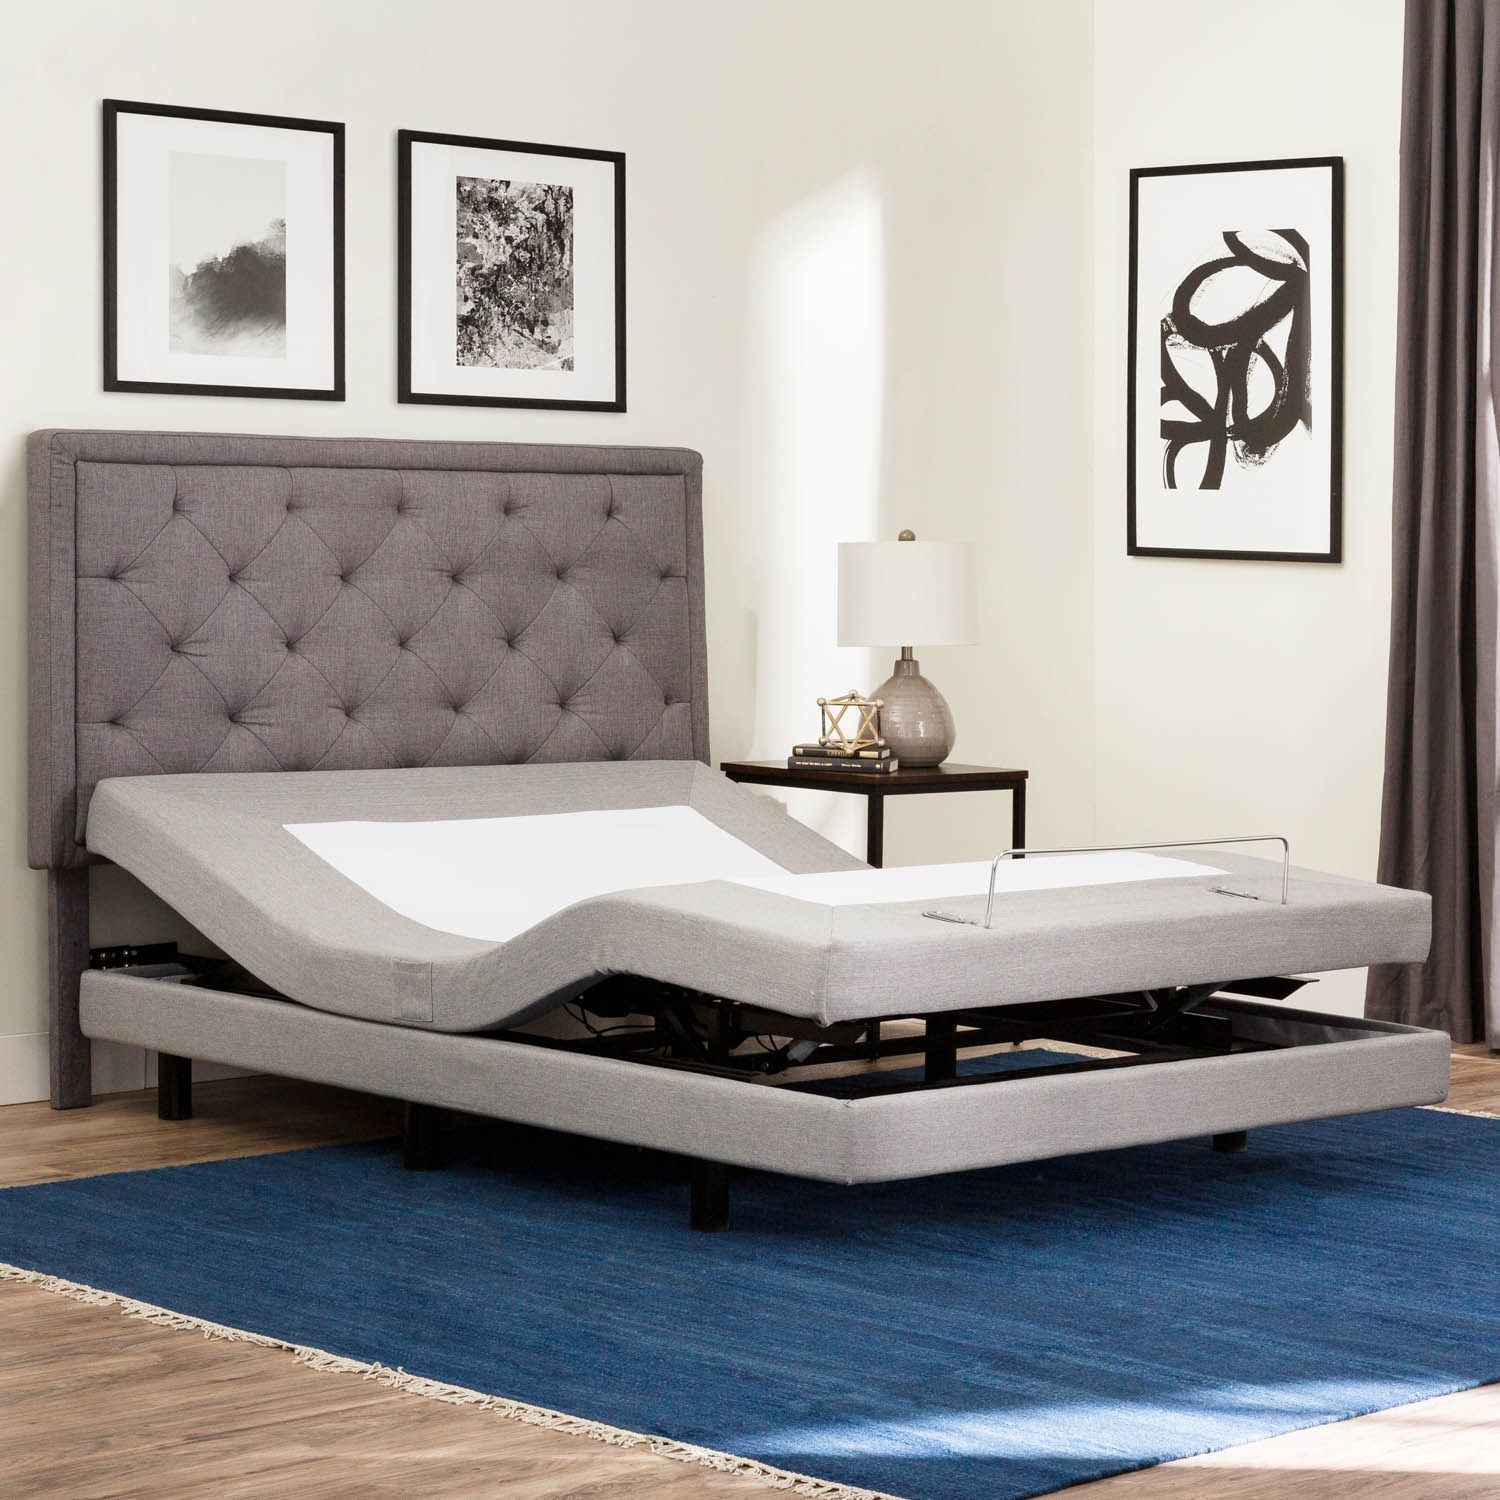 Brookside Deluxe Adjustable Bed Base Queen (Queen), Gray